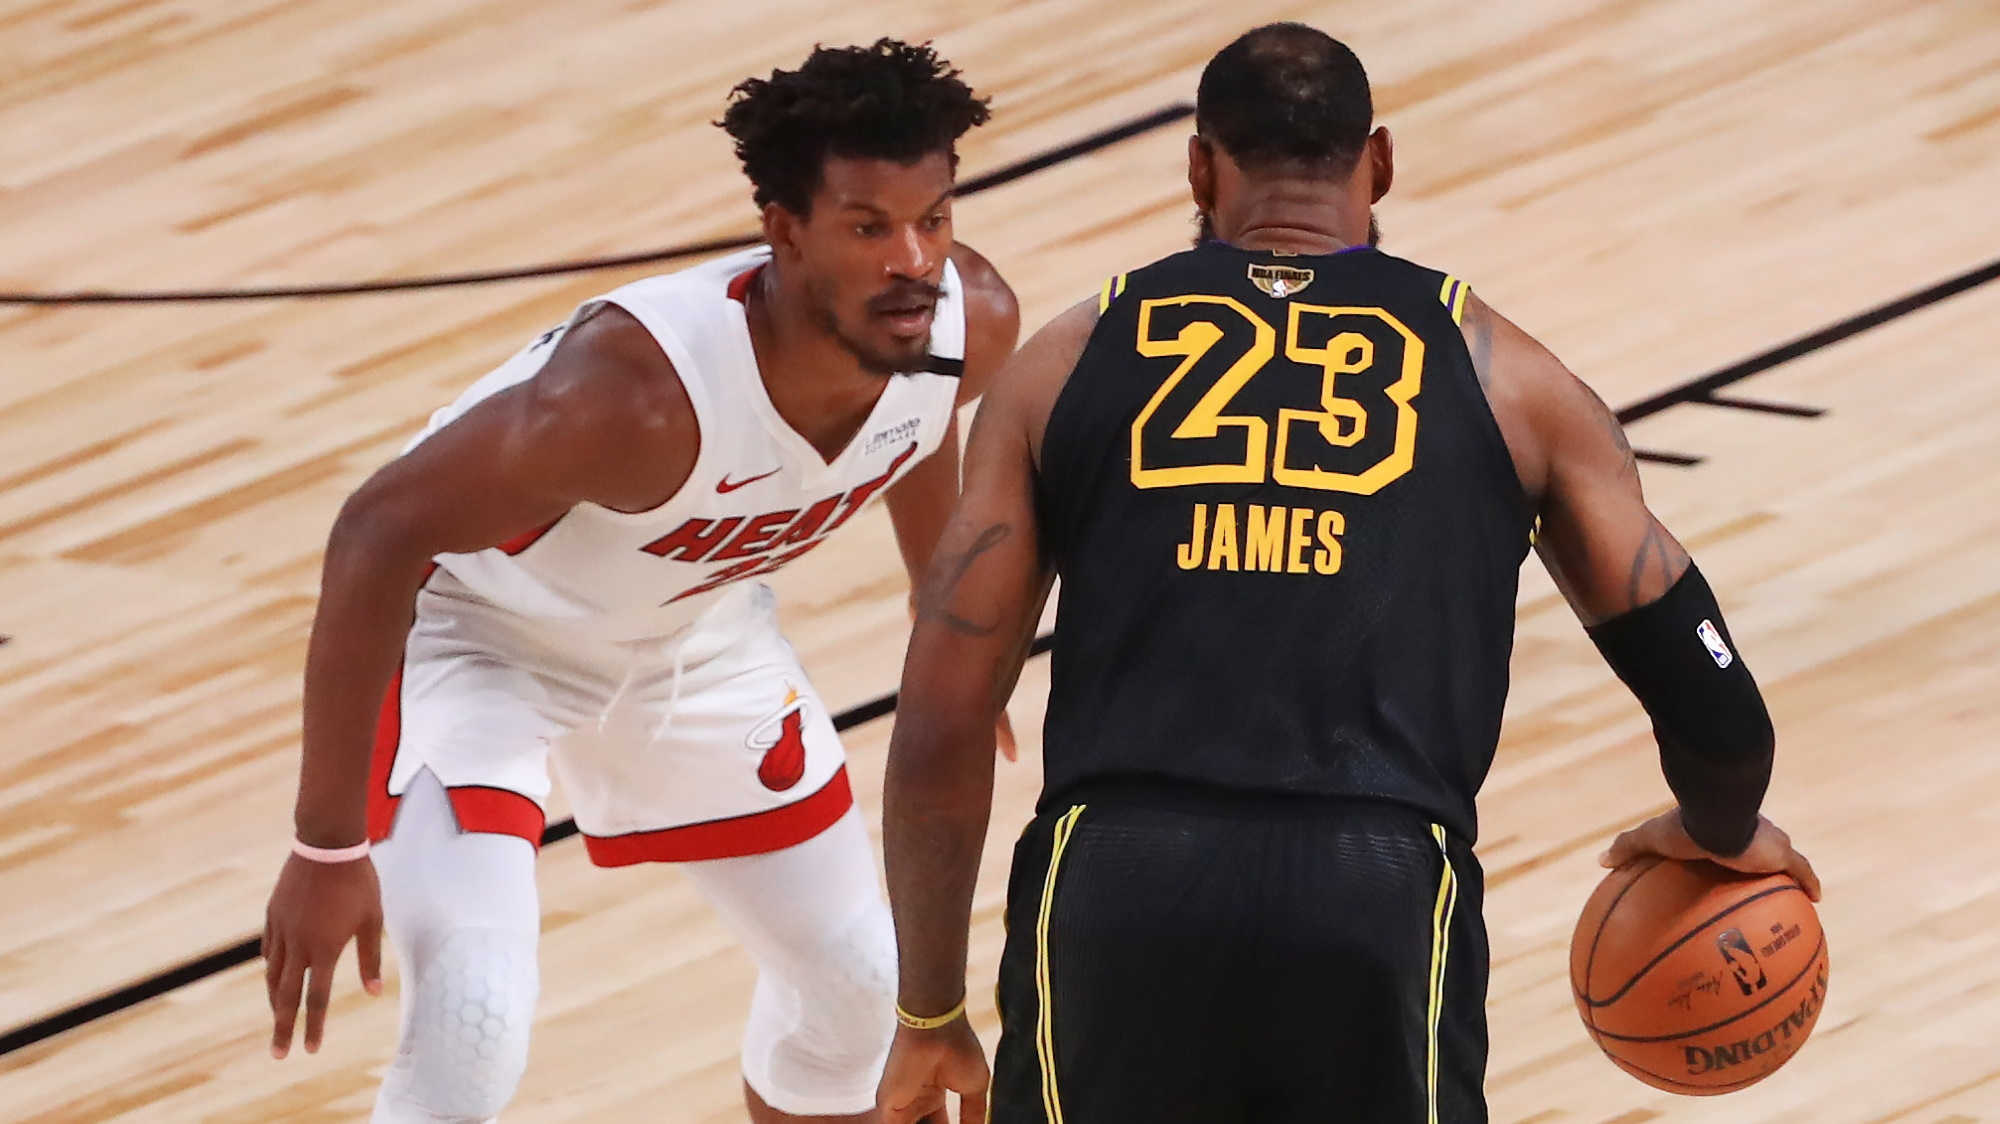 Lakers vs Heat live stream: how to watch NBA Finals game 6